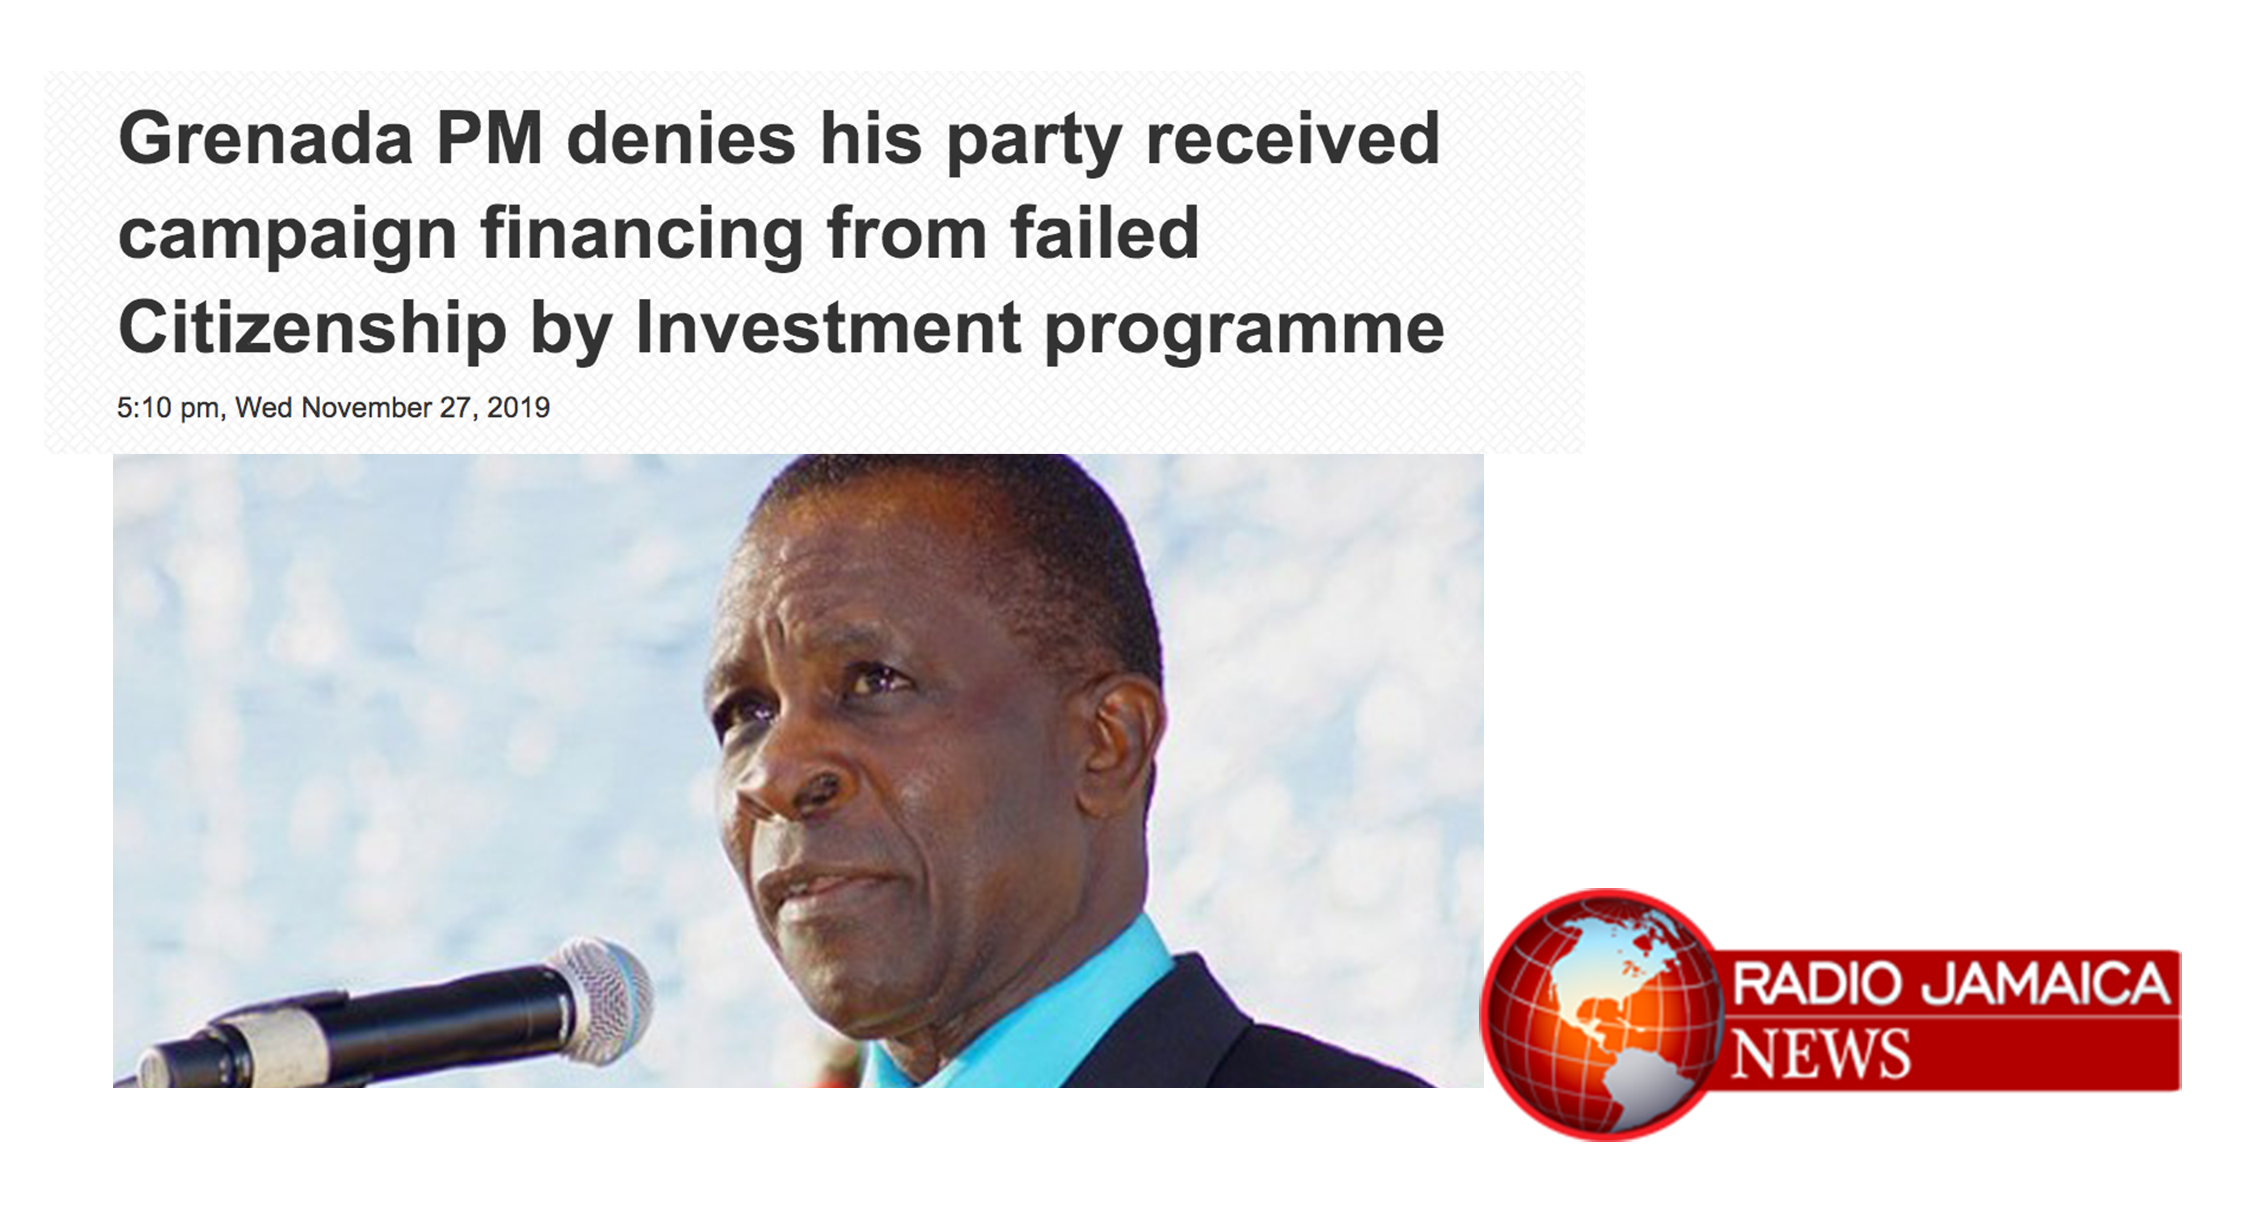 Radio Jamaica: Grenada PM denies his party received campaign financing from failed Citizenship by Investment programme